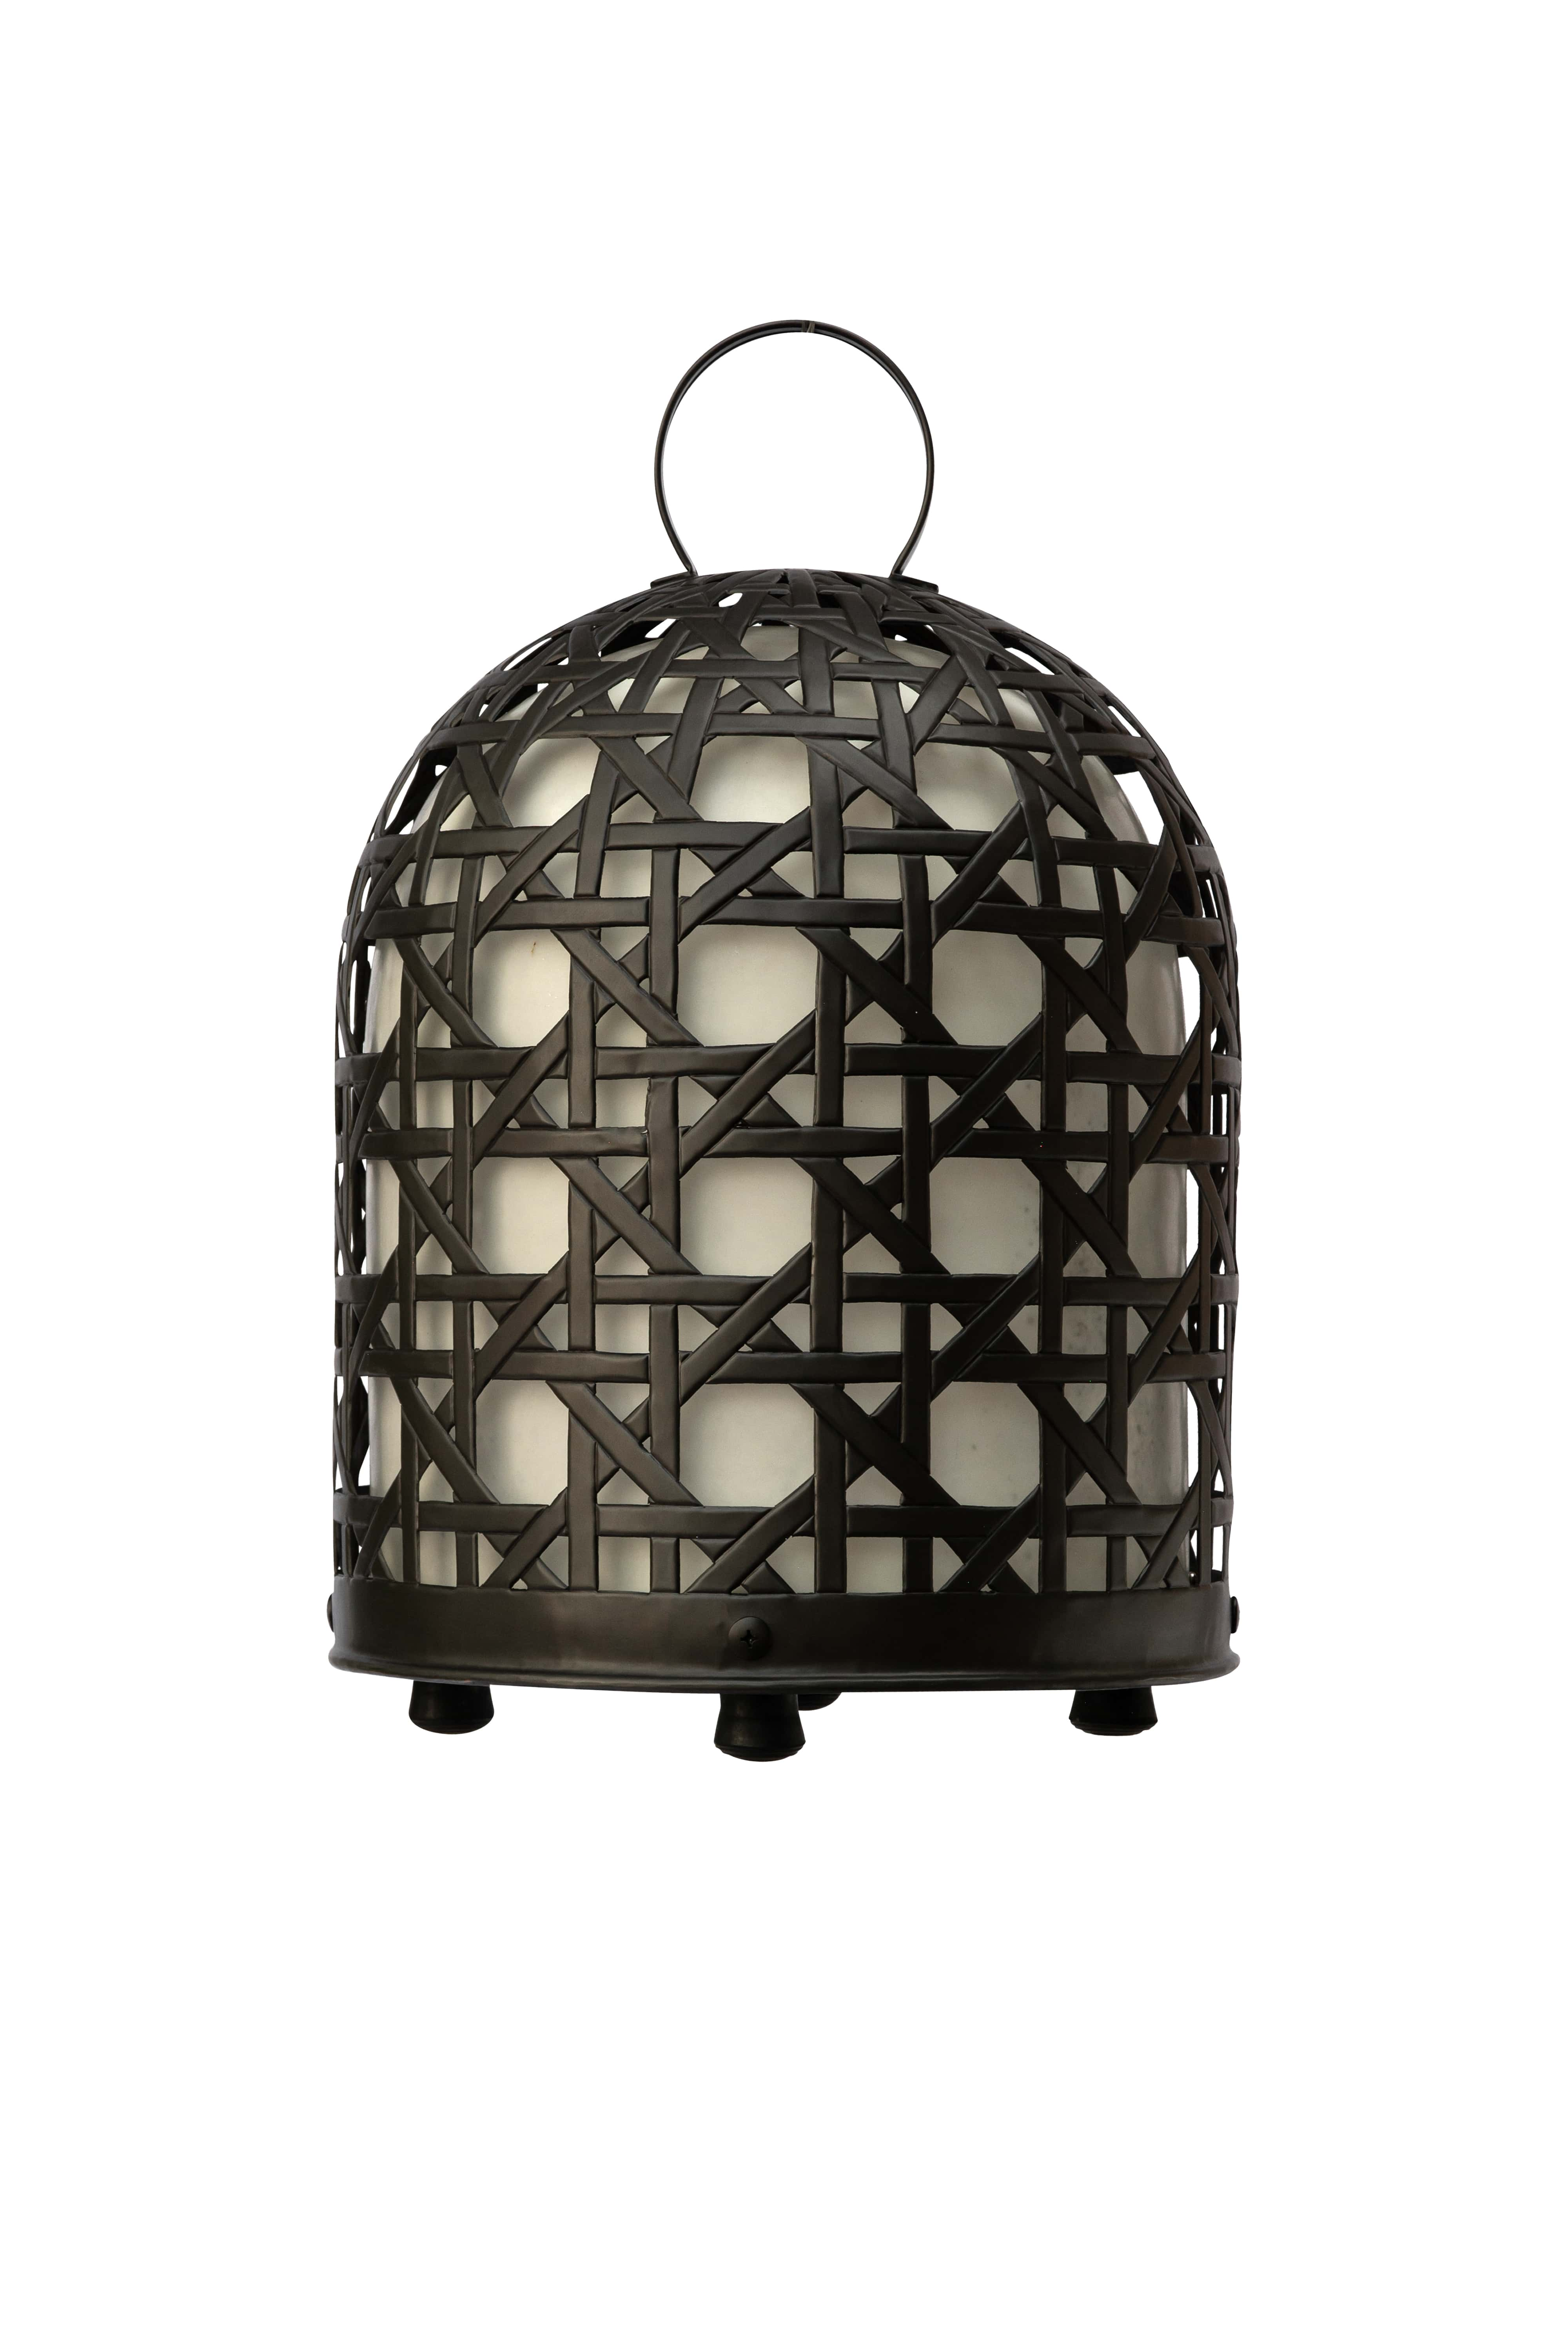 Rooster cage lamp, 66 Cm